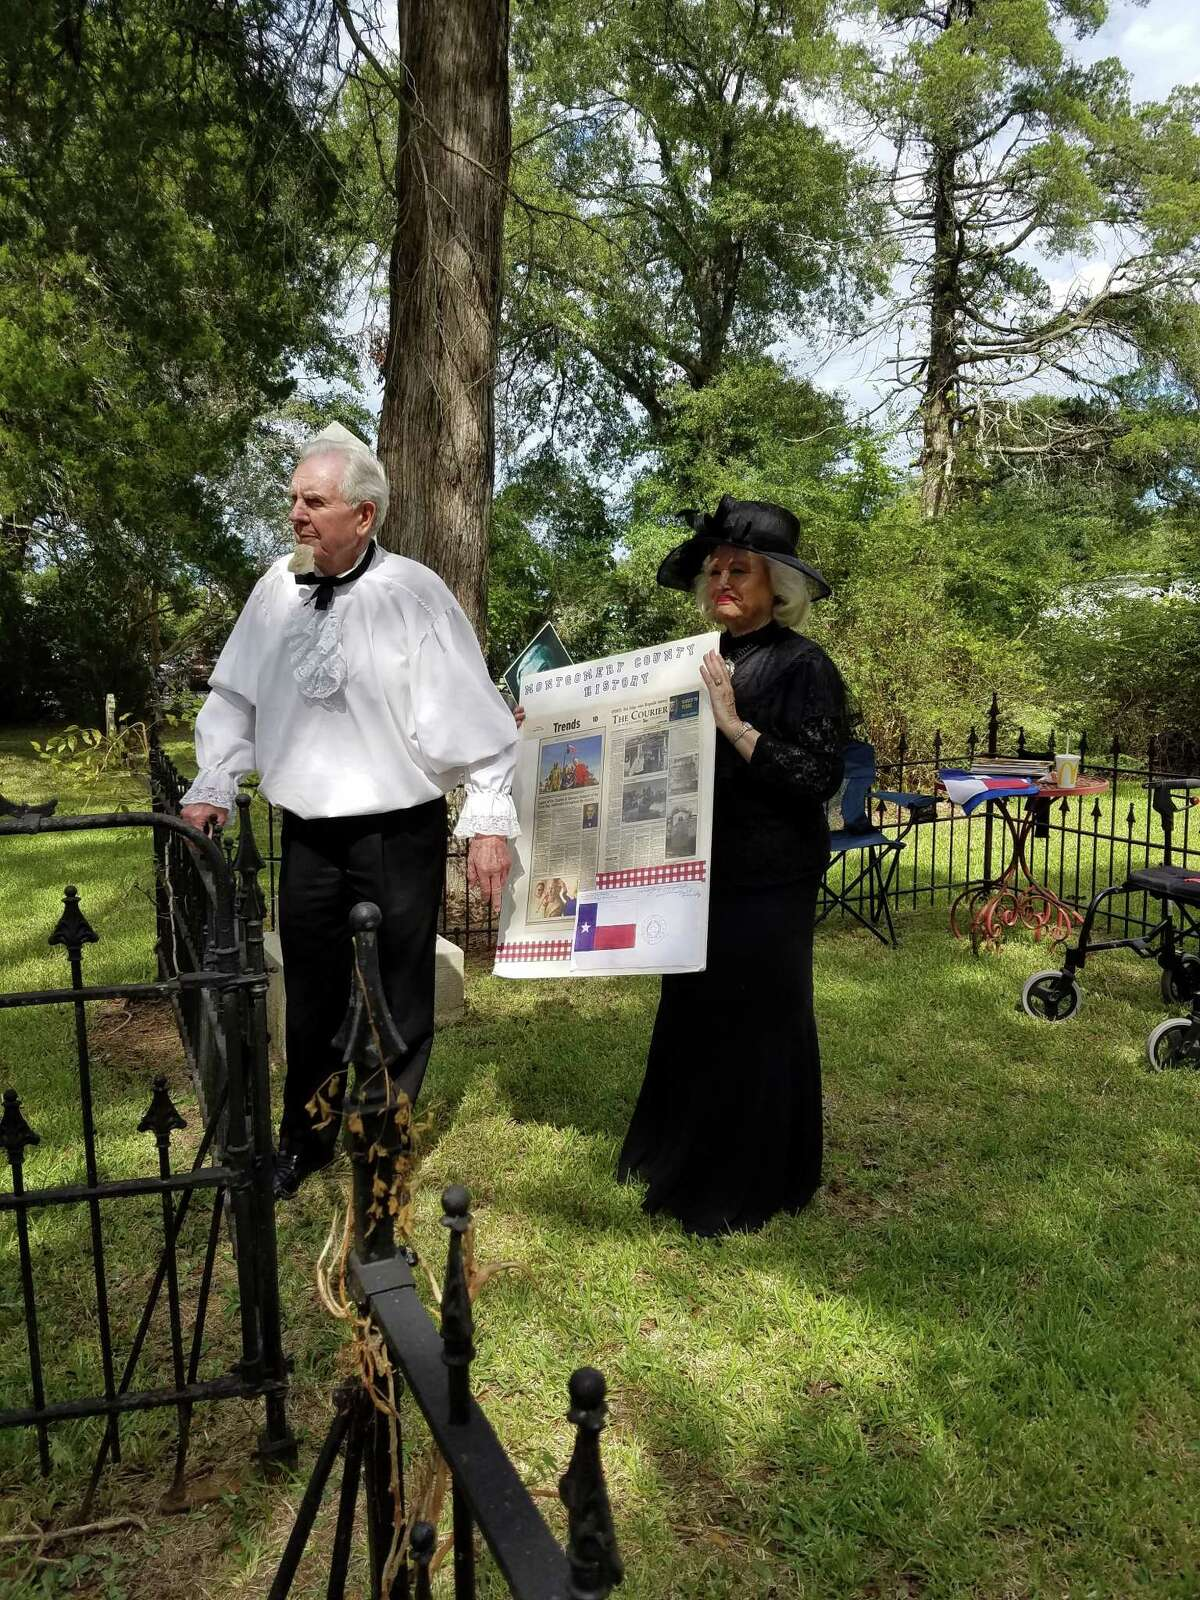 Actors portray Charles B. Stewart, designer of the Texas flag, and his wife Julia at the Voices of the Past tour in 2019 held in Montgomery.